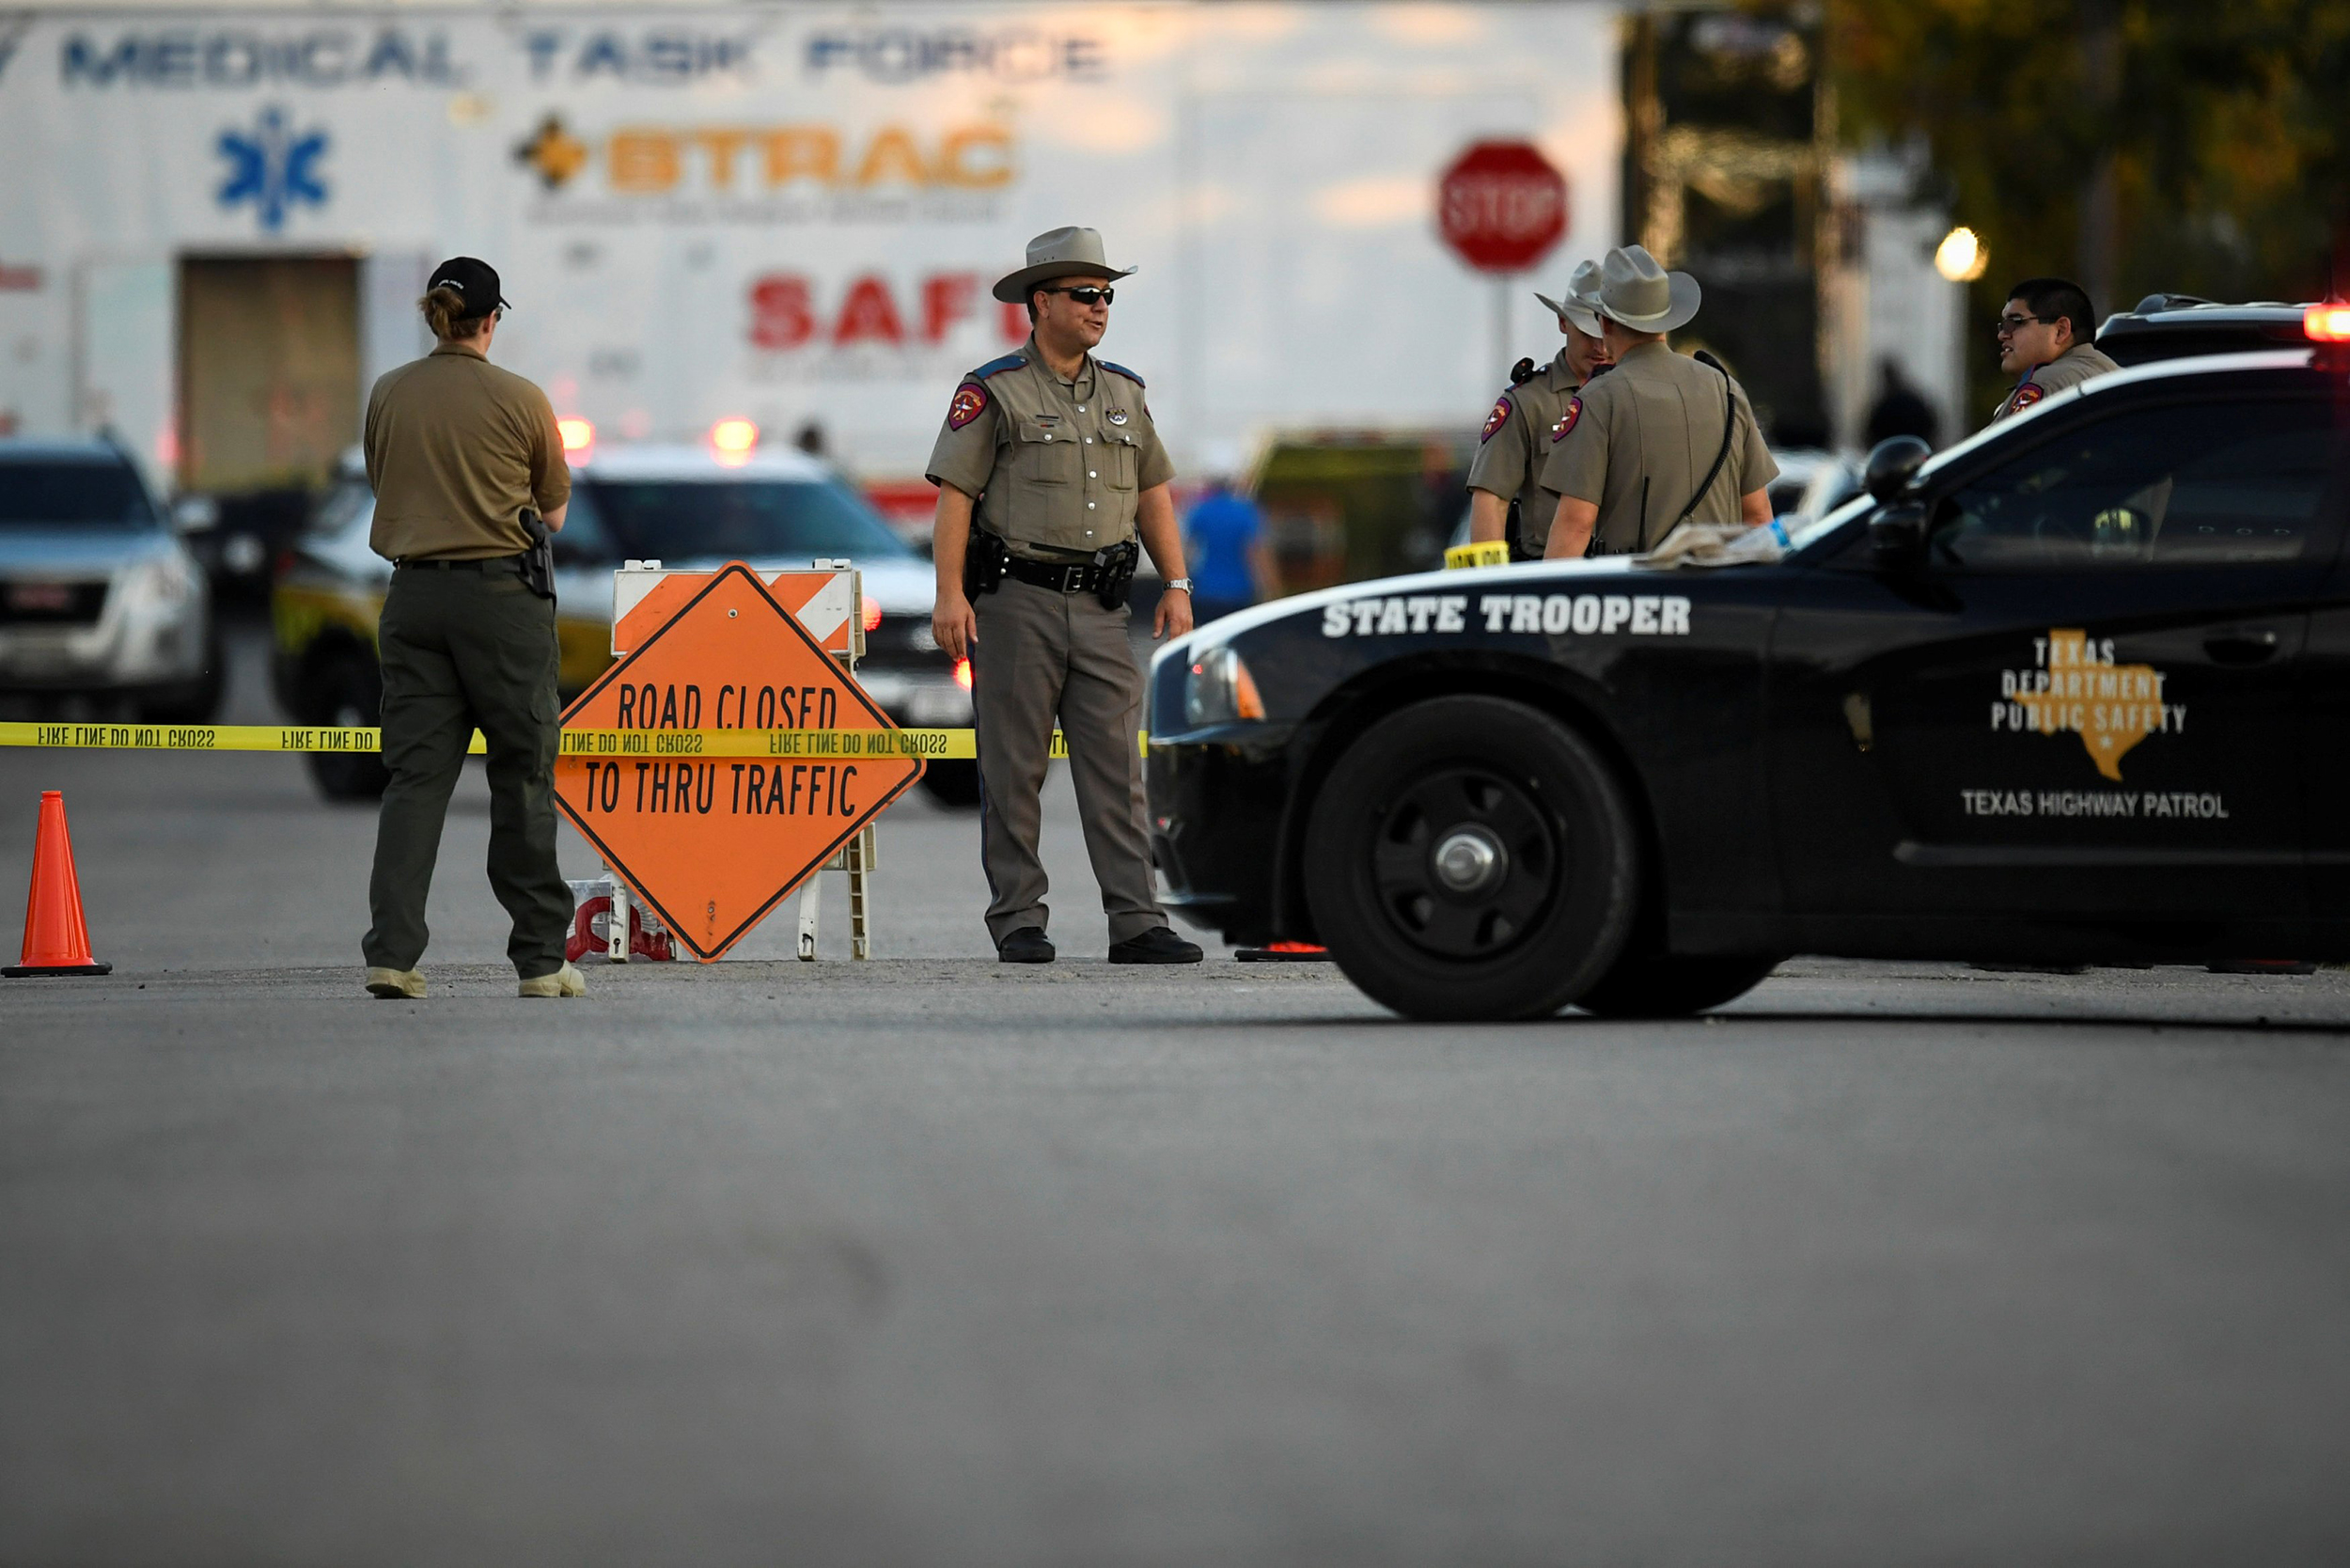 Image: Mass Shooting in Texas